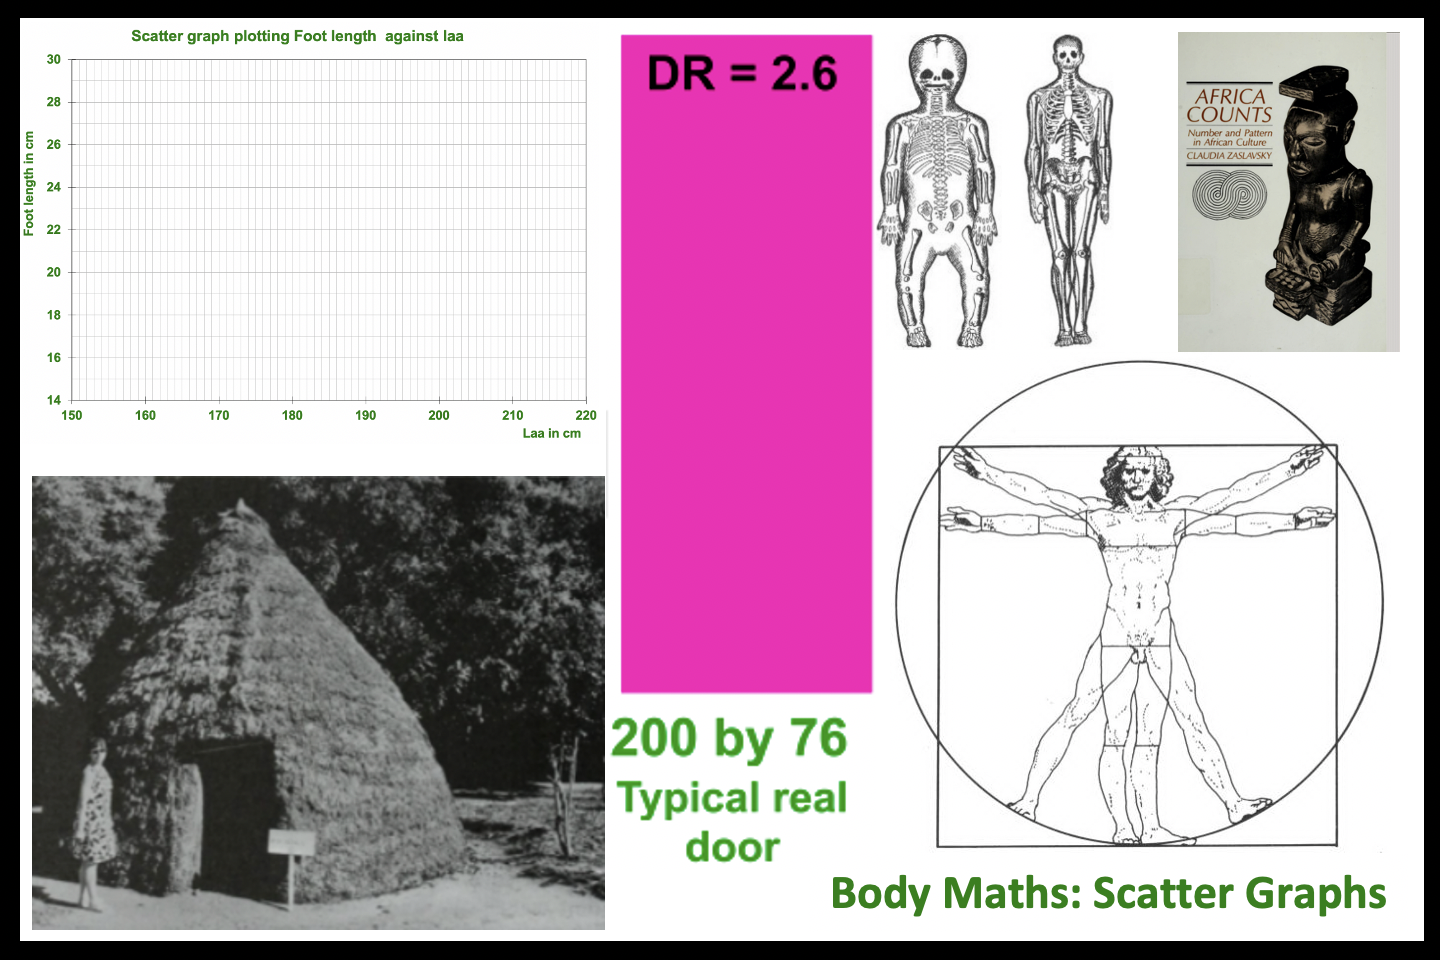 Body Maths: Scatter Graphs